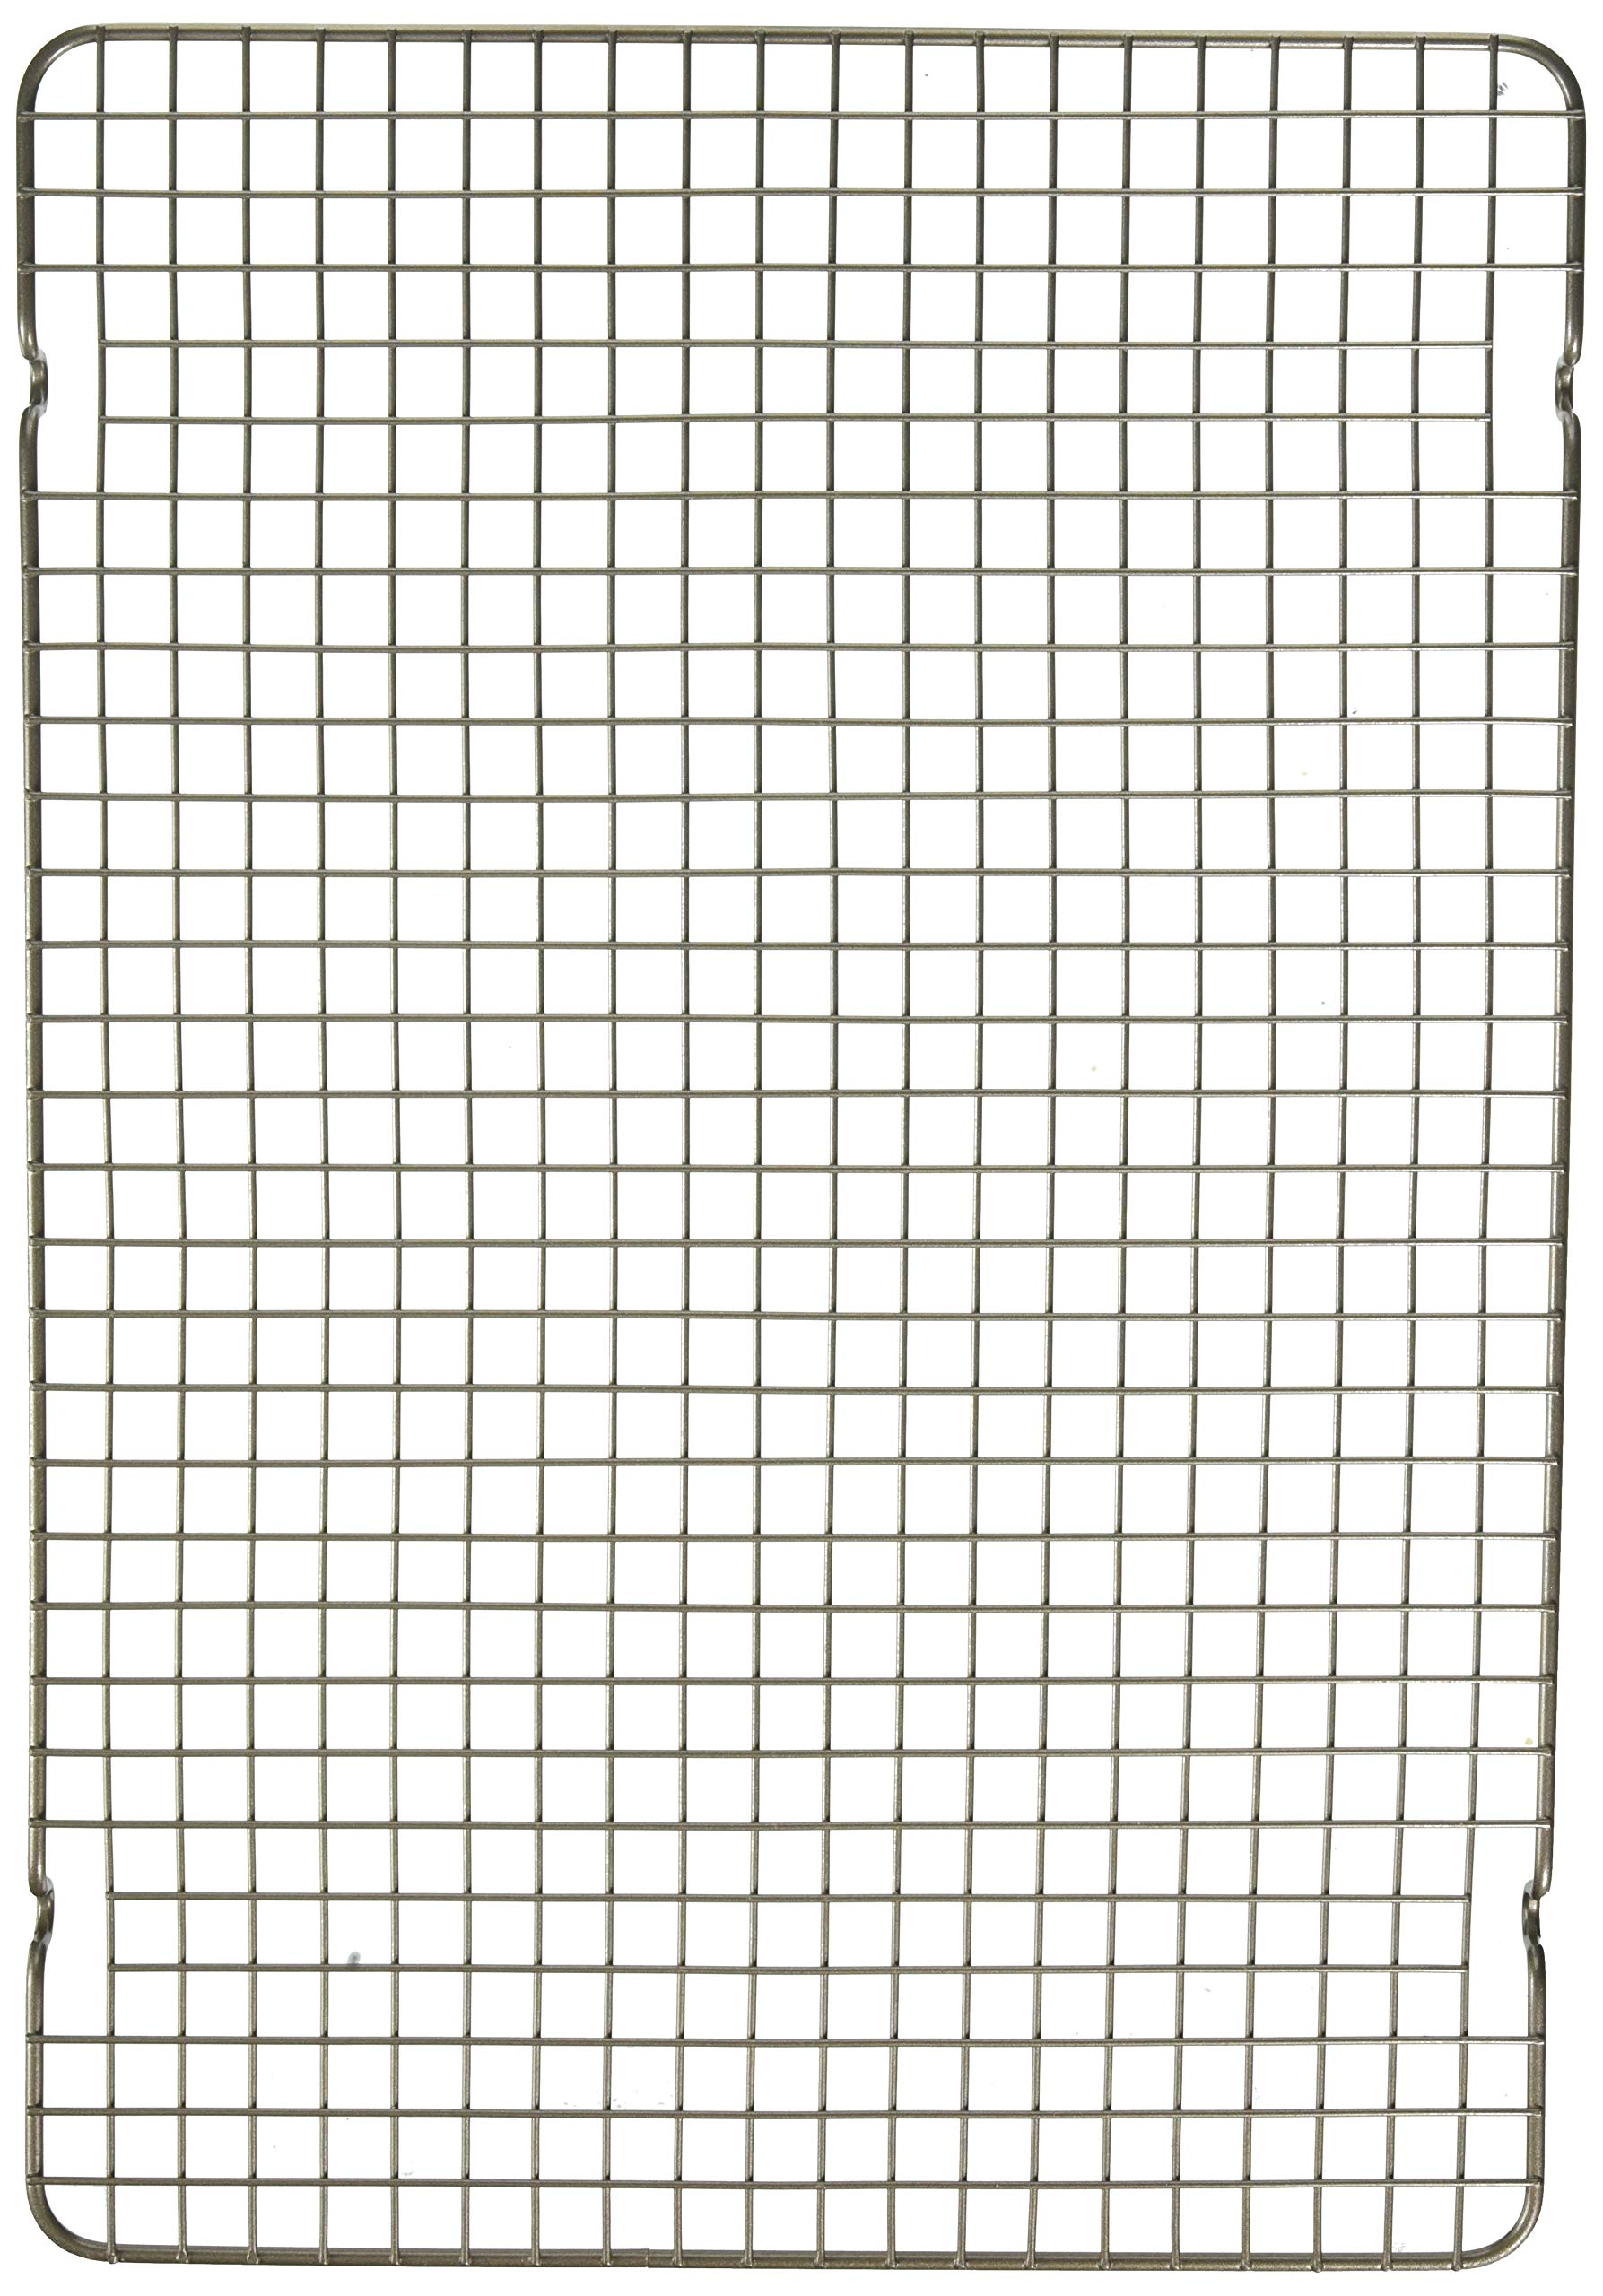 Nordic Ware 43343 Oven Safe Nonstick Baking & Cooling Grid (1/2 Sheet), One Size, Steel